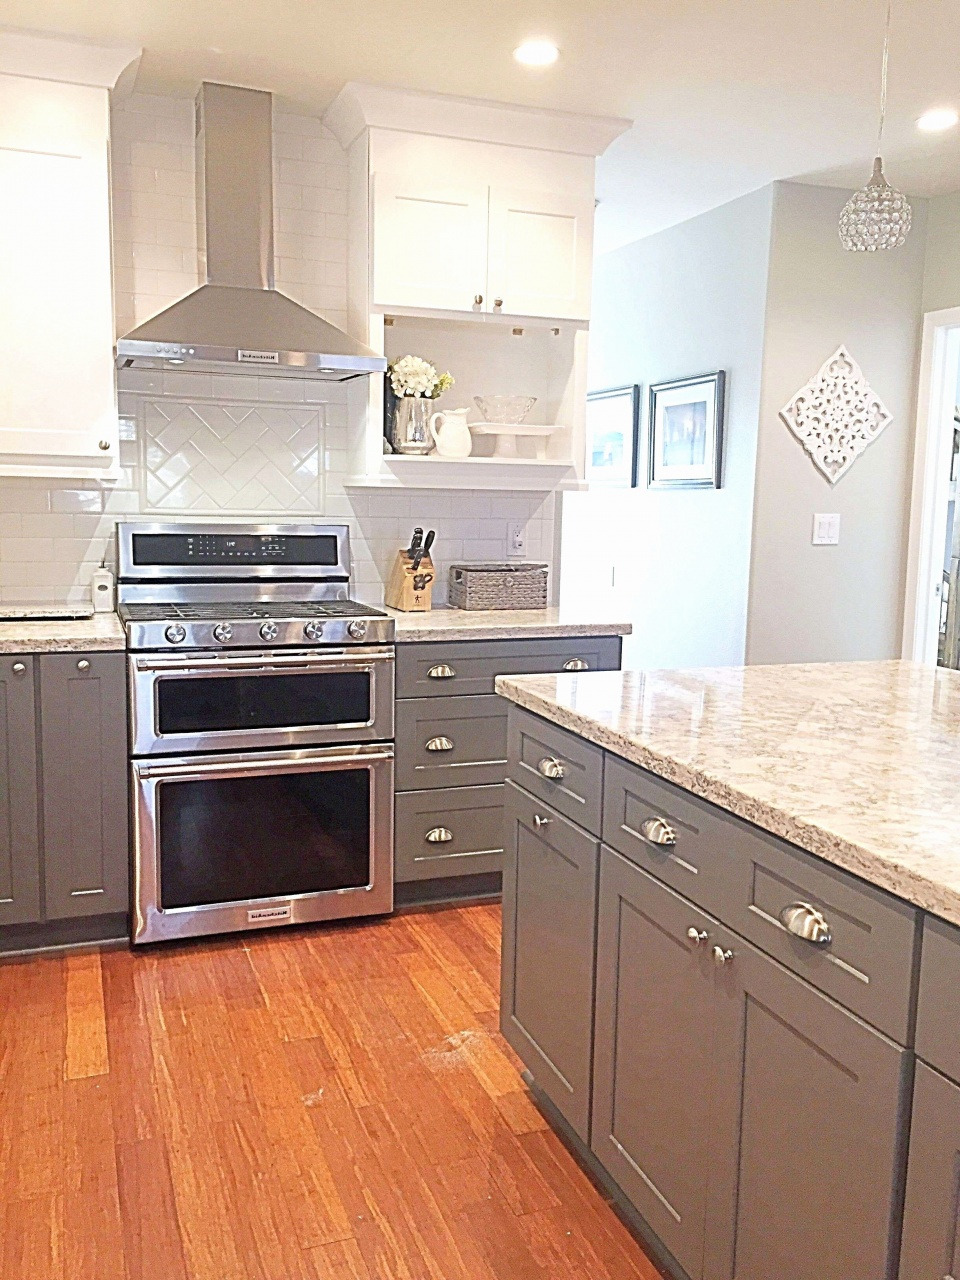 lowes kitchen cabinets reviews 30 stylish lowes hardwood flooring installation cost from lowes kitchen cabinets reviews